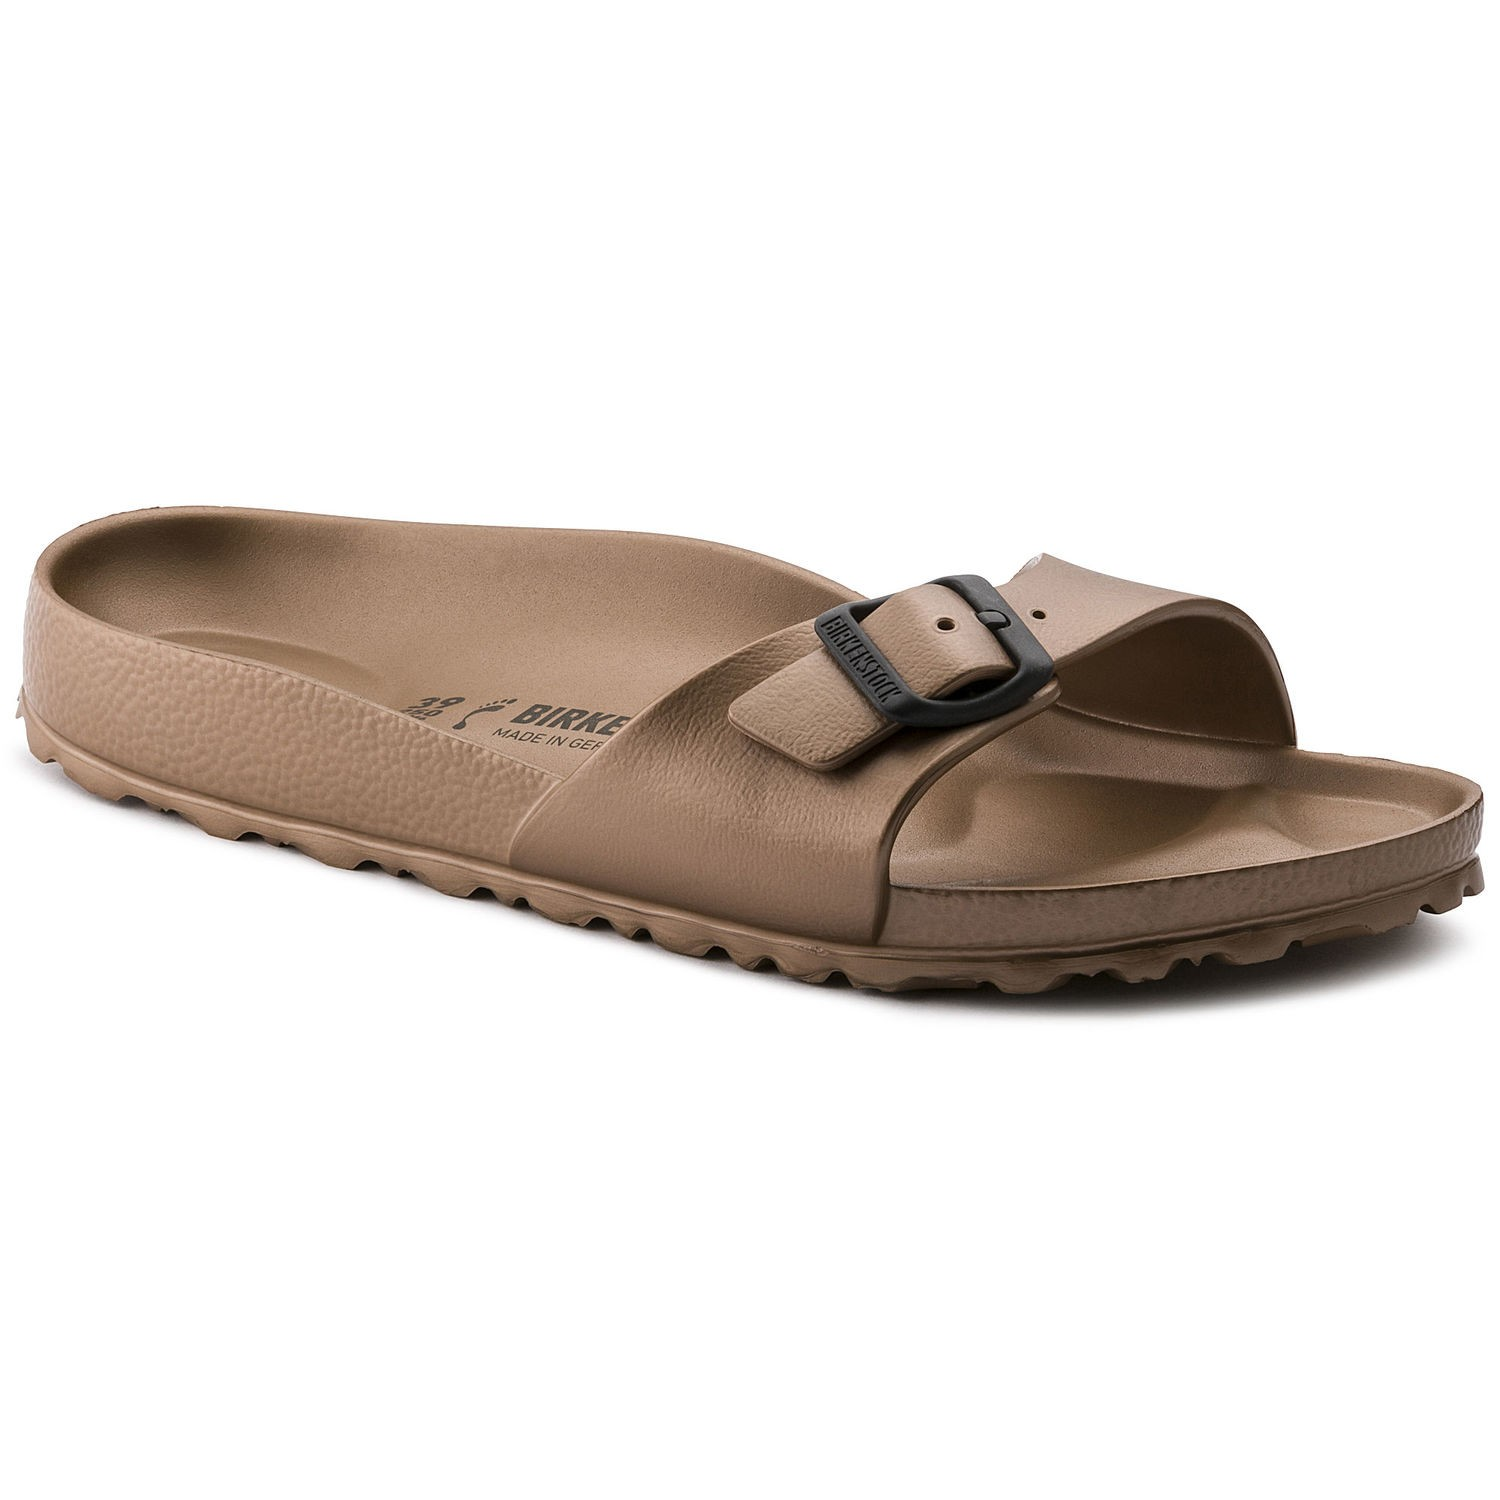 fd83a0657c013 Style Birkenstock Sandalo Donna Gomma Madrid Rame 1001504